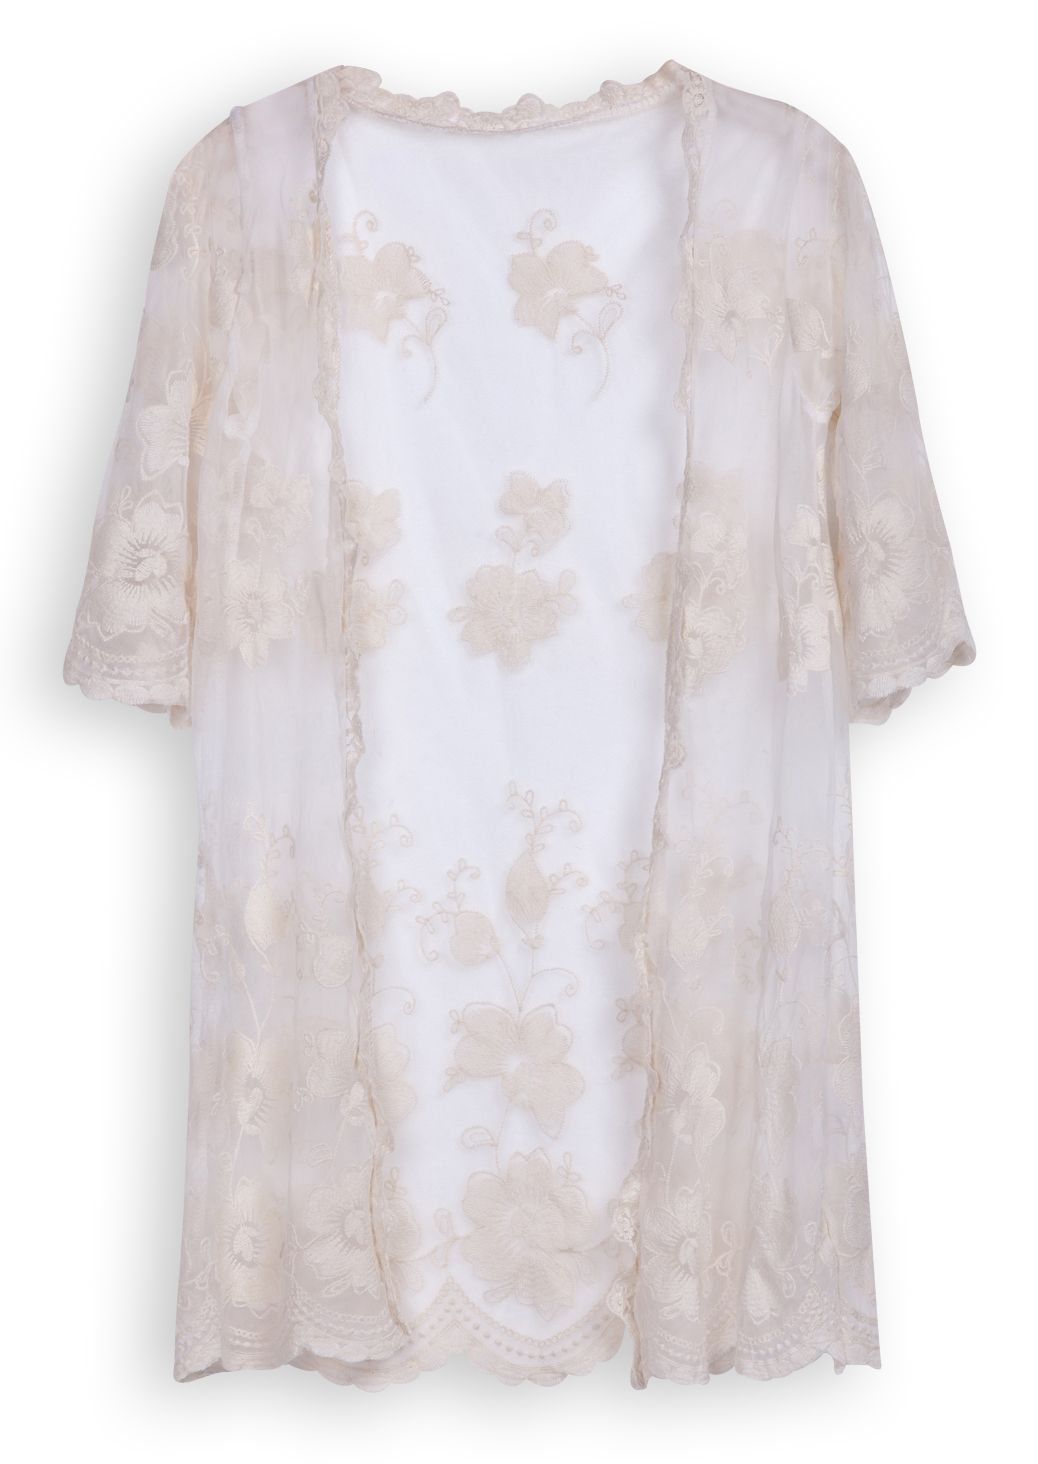 Beige Short Sleeve Hollow Embroidery Lace Cardigan - Sheinside.com ...